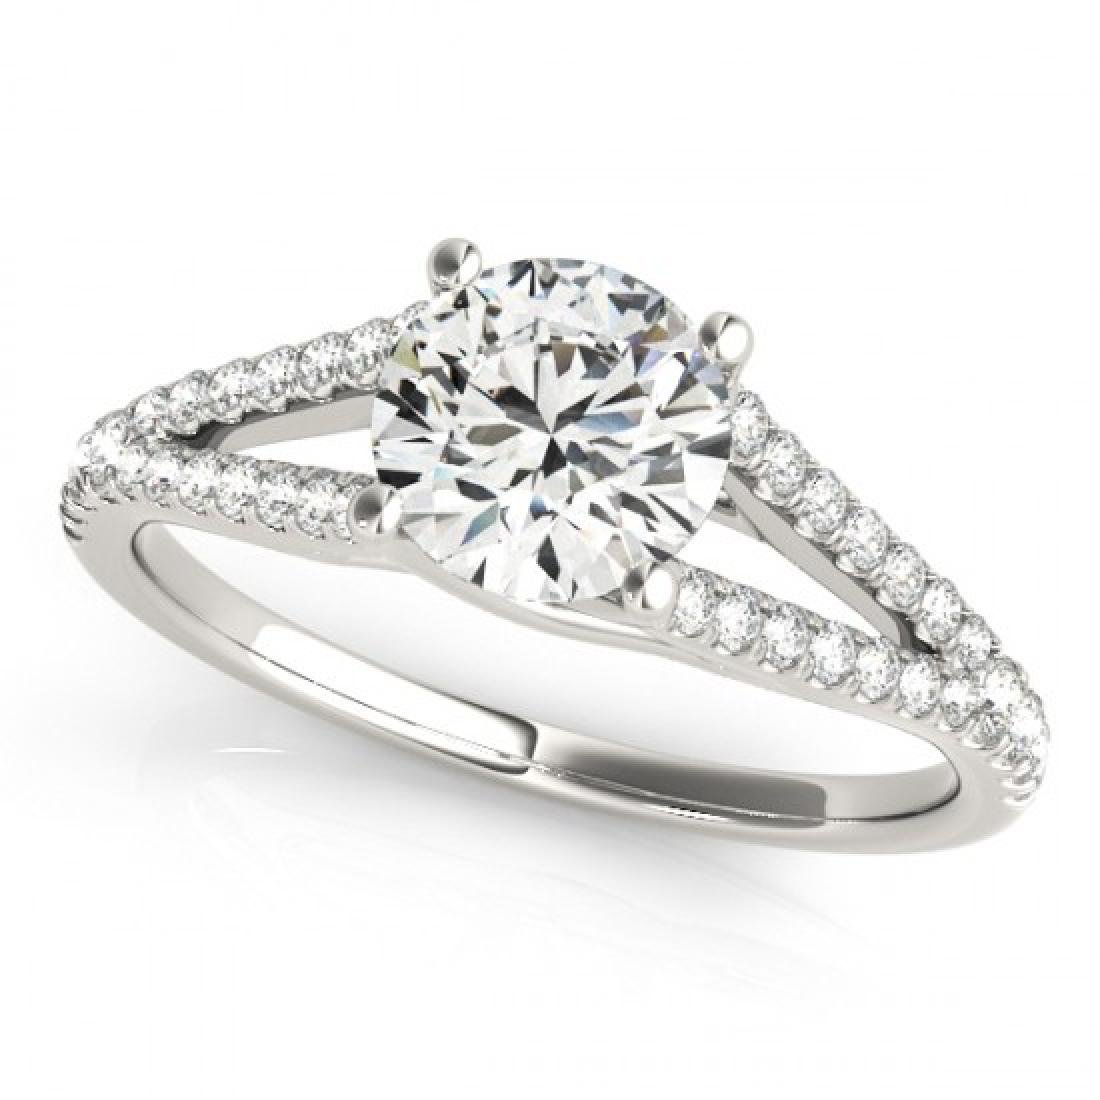 1.75 CTW Certified VS/SI Diamond Solitaire Ring 14K